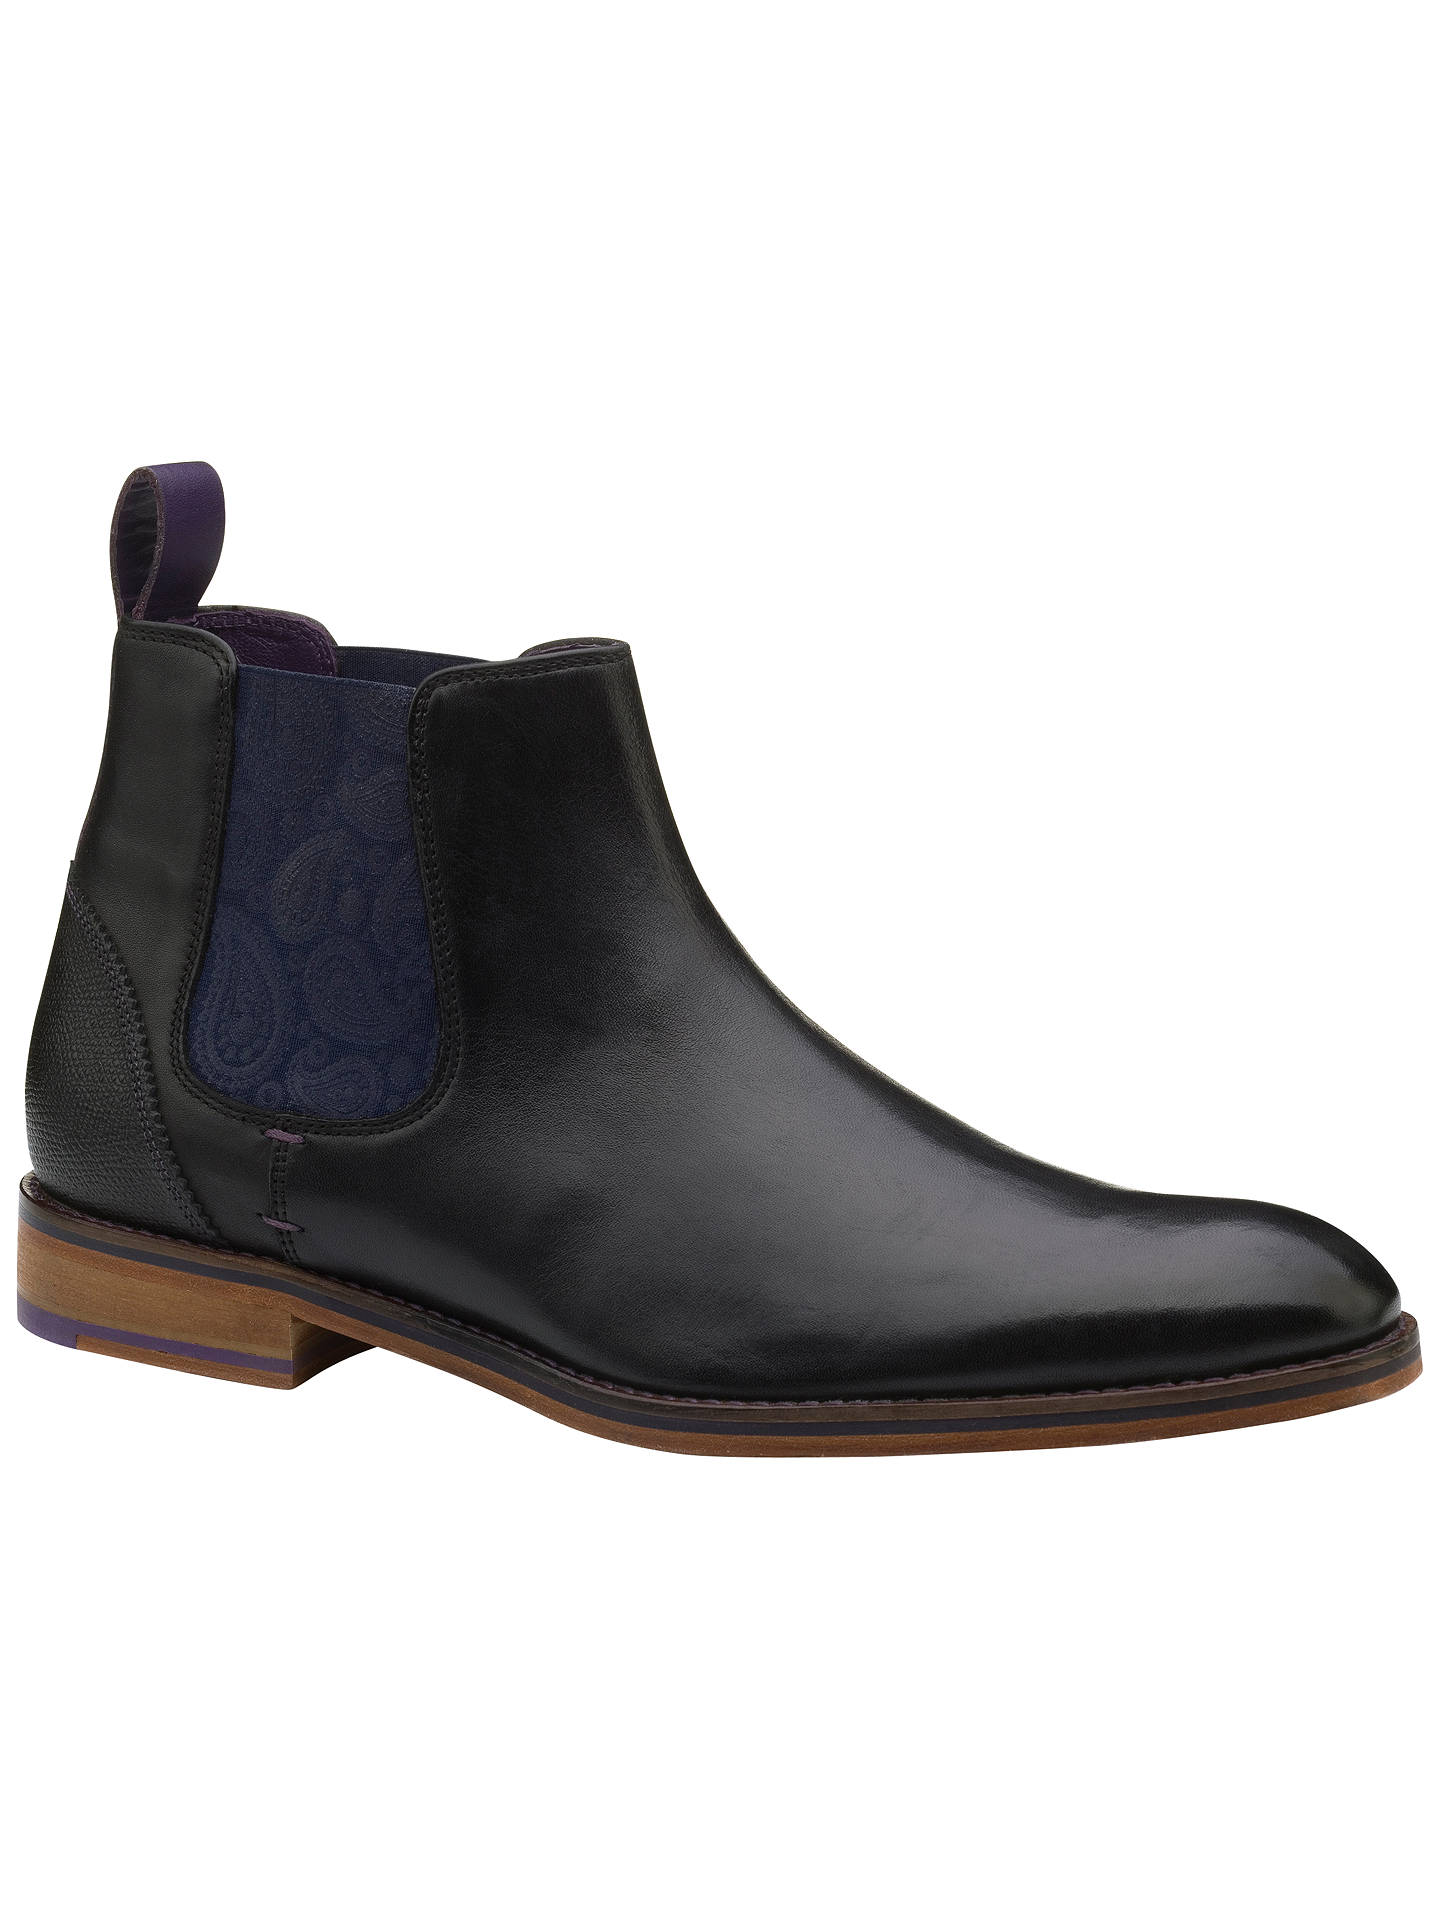 550f14c0a Ted Baker Camroon 4 Chelsea Boots at John Lewis   Partners